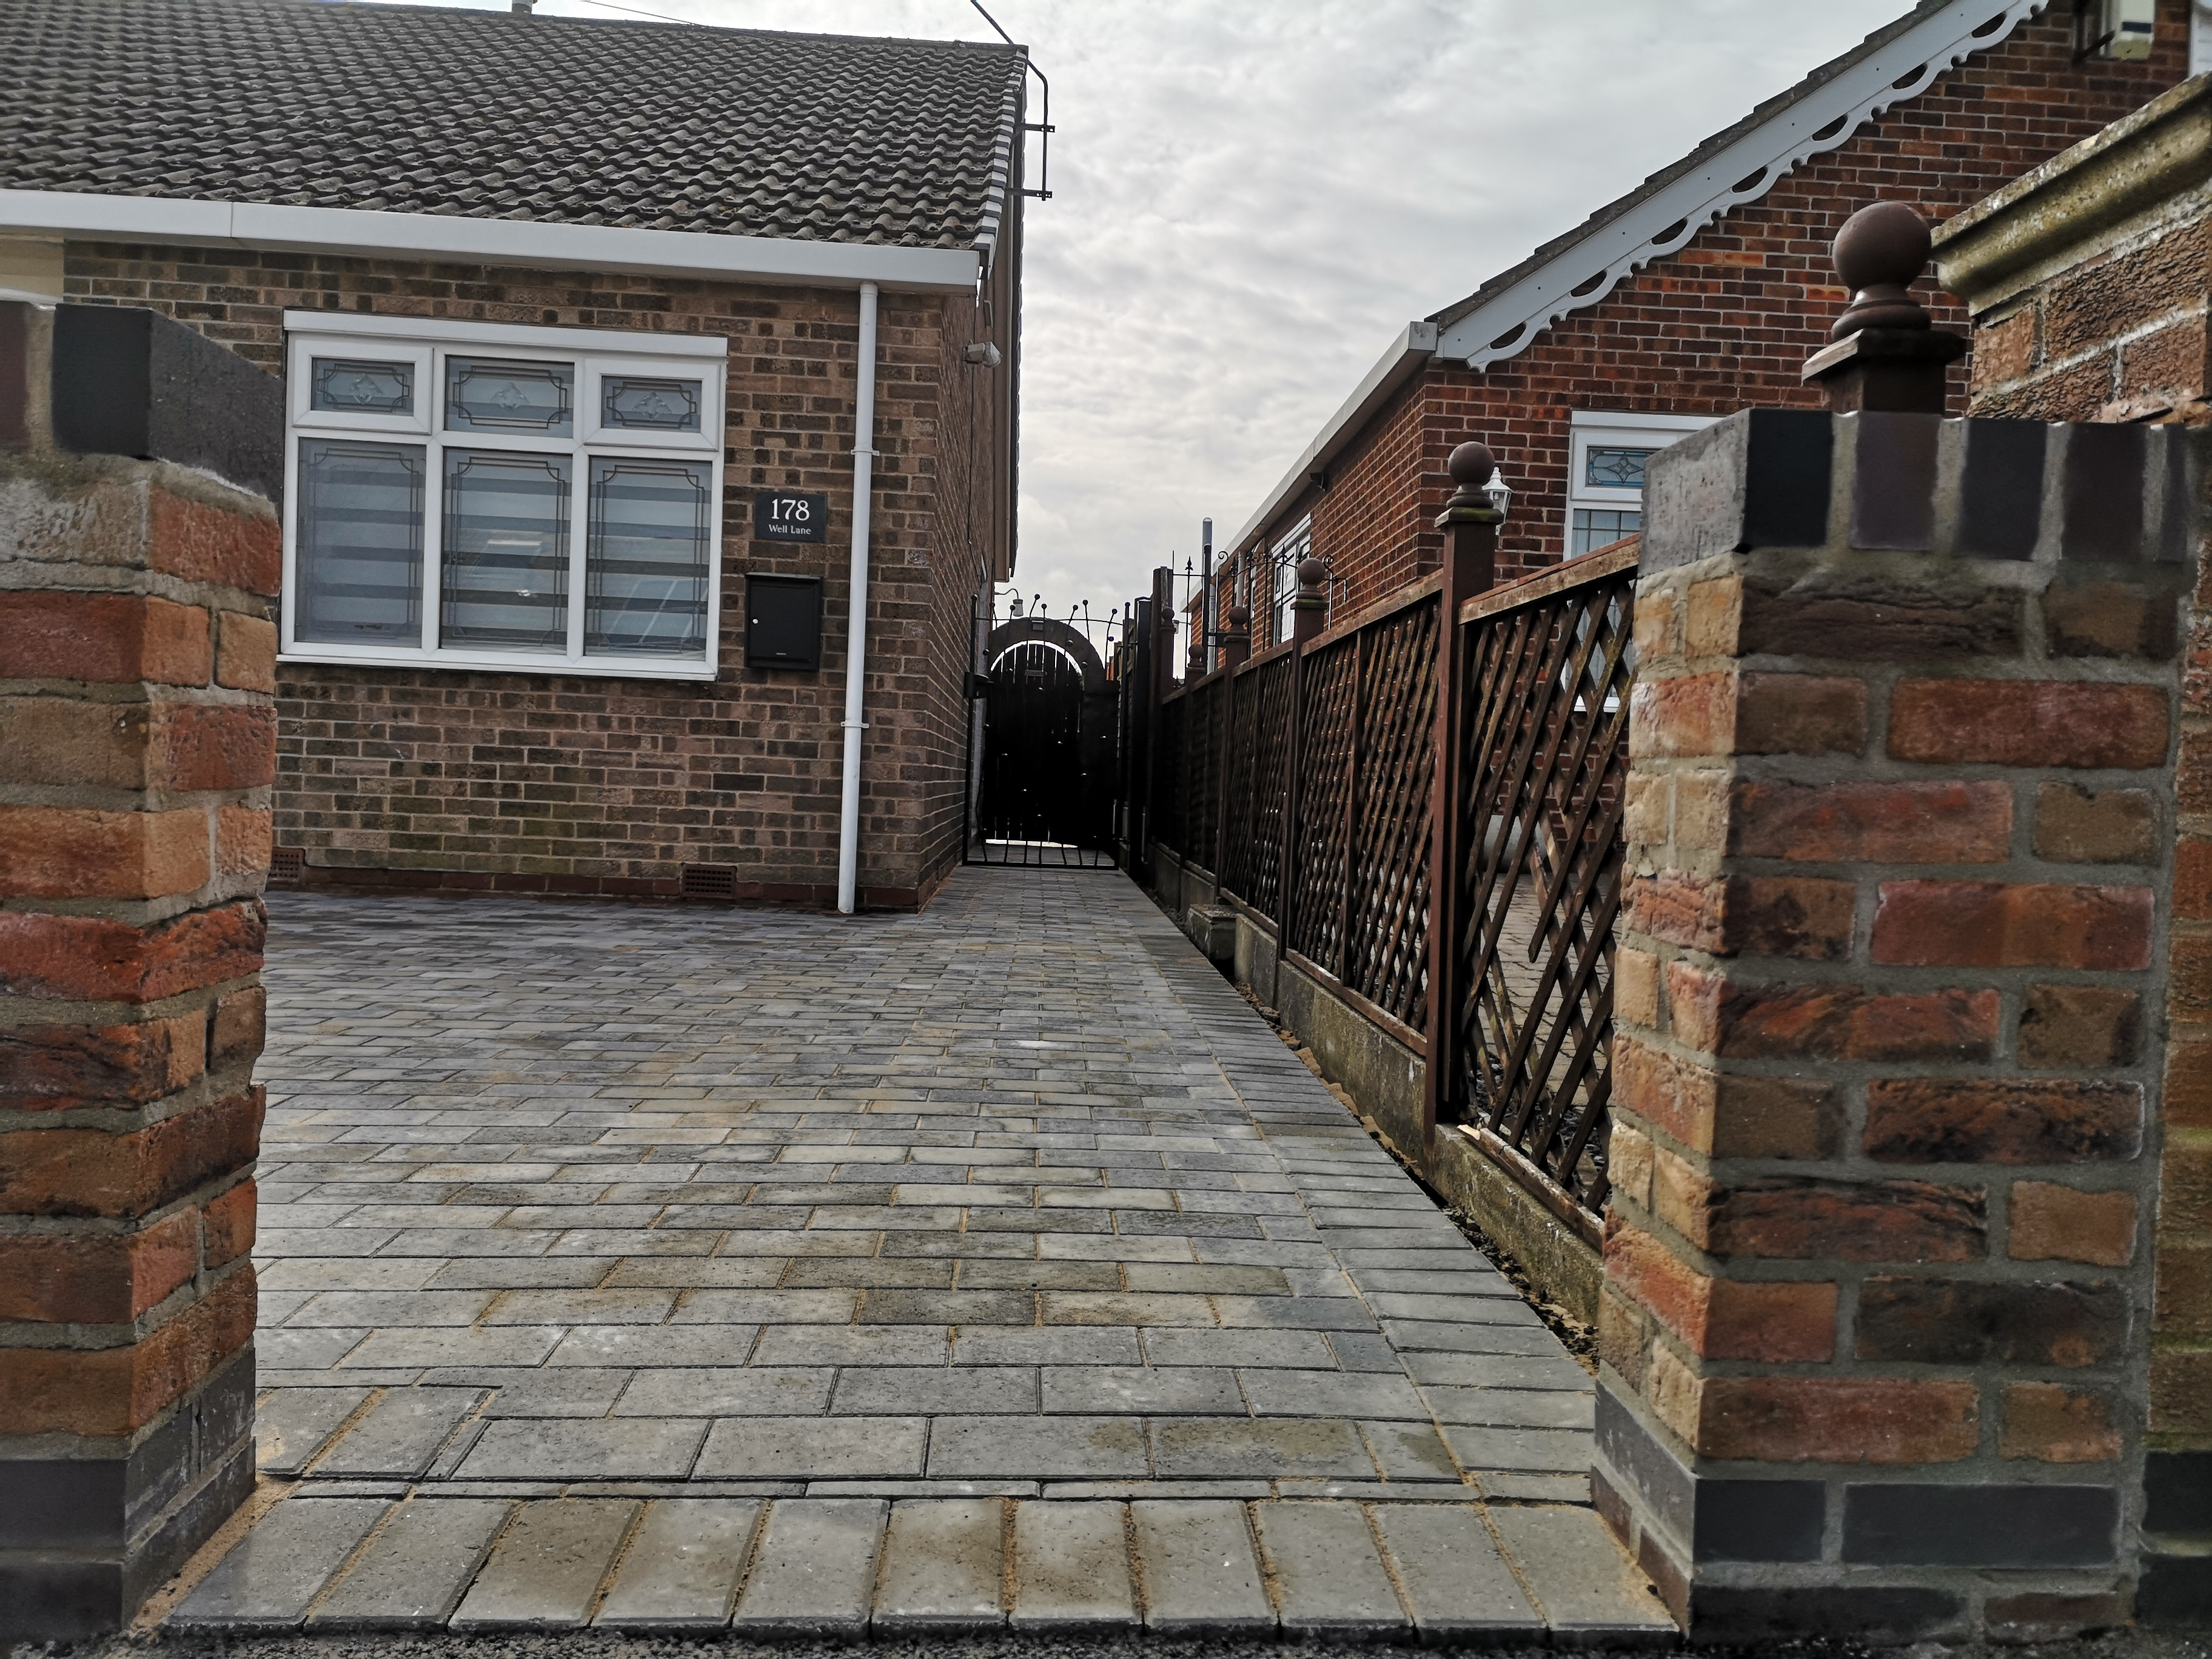 wall and paving